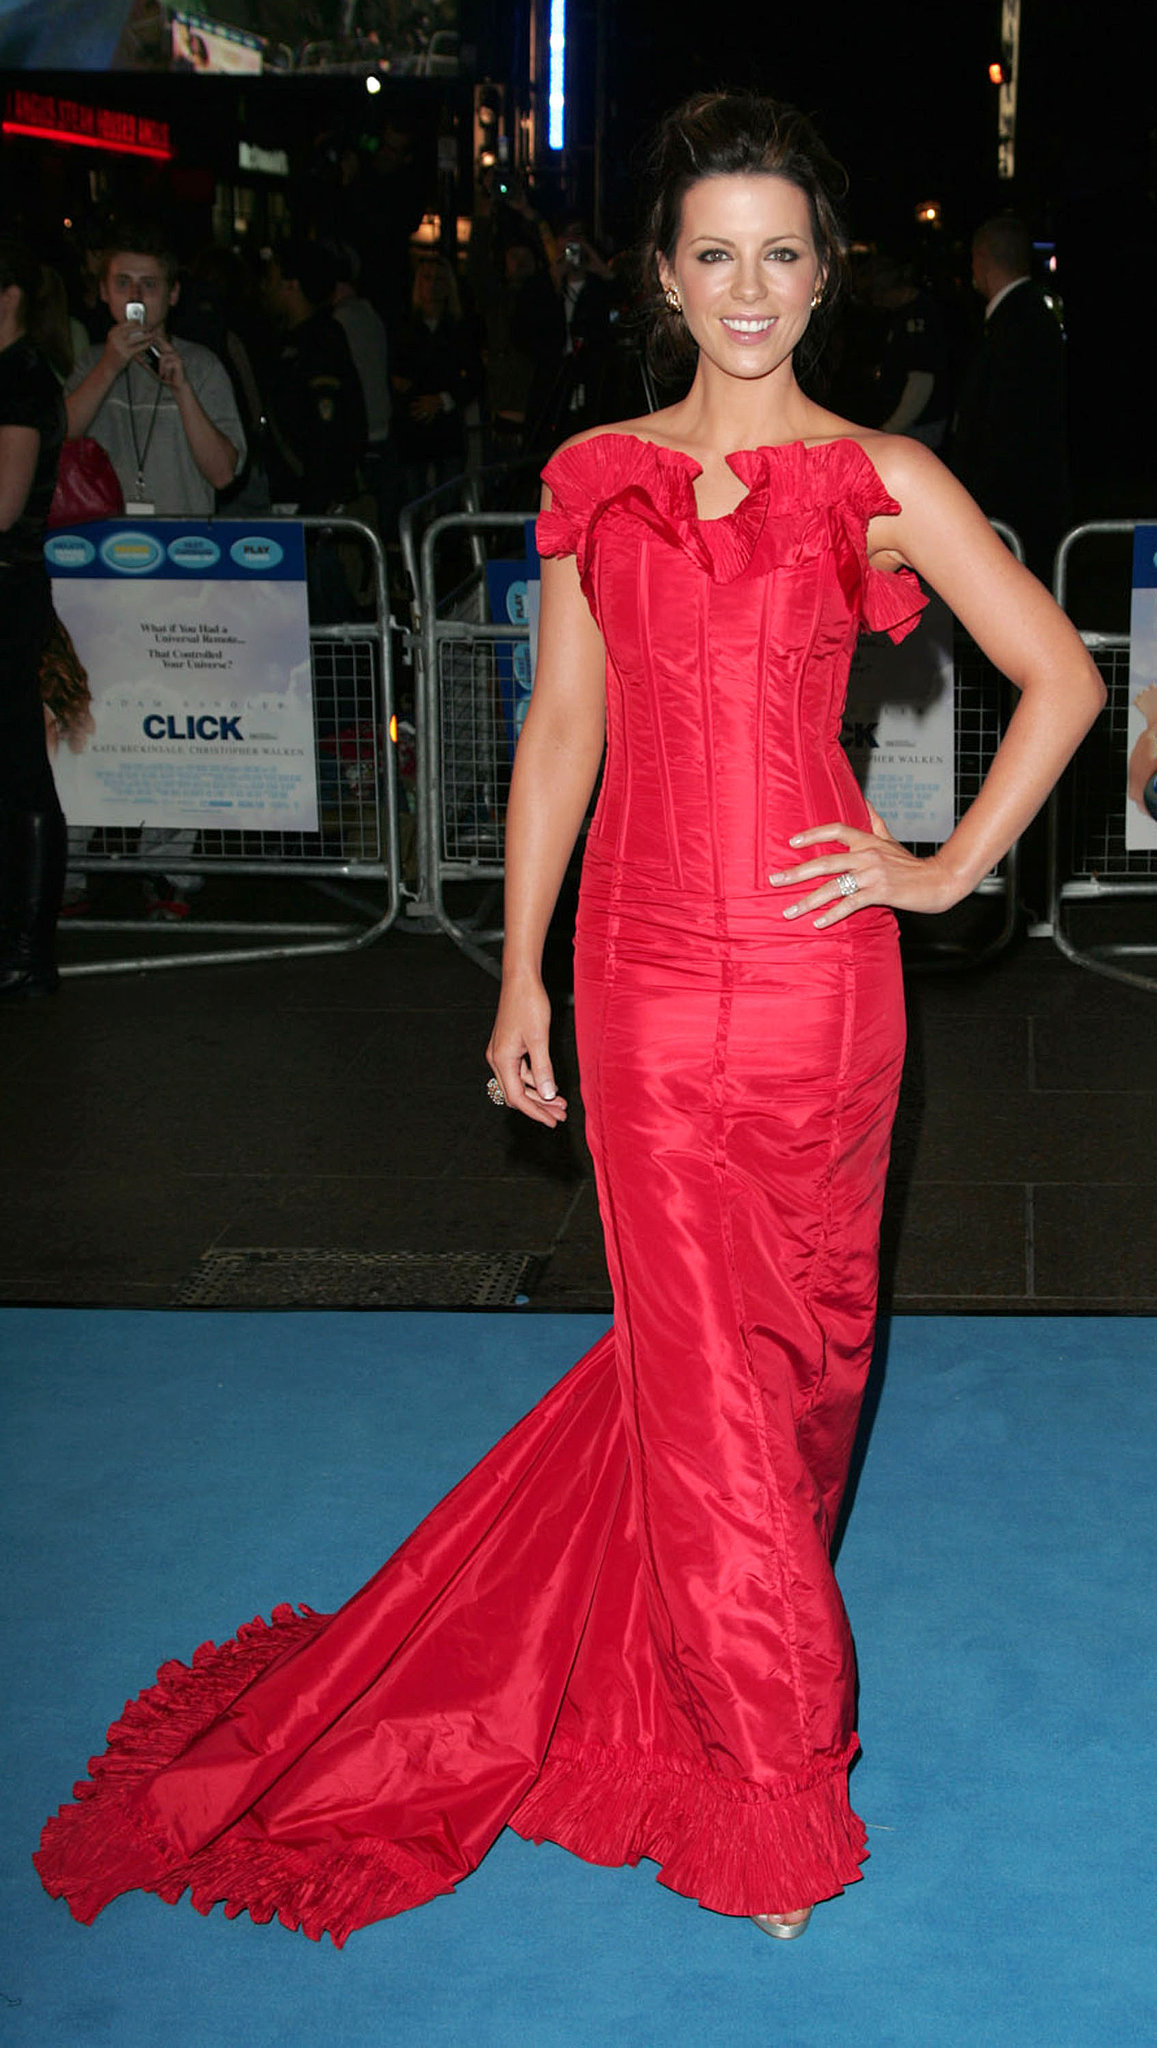 In September 2006, Kate Beckinsale sported a hot red corset dress in London.